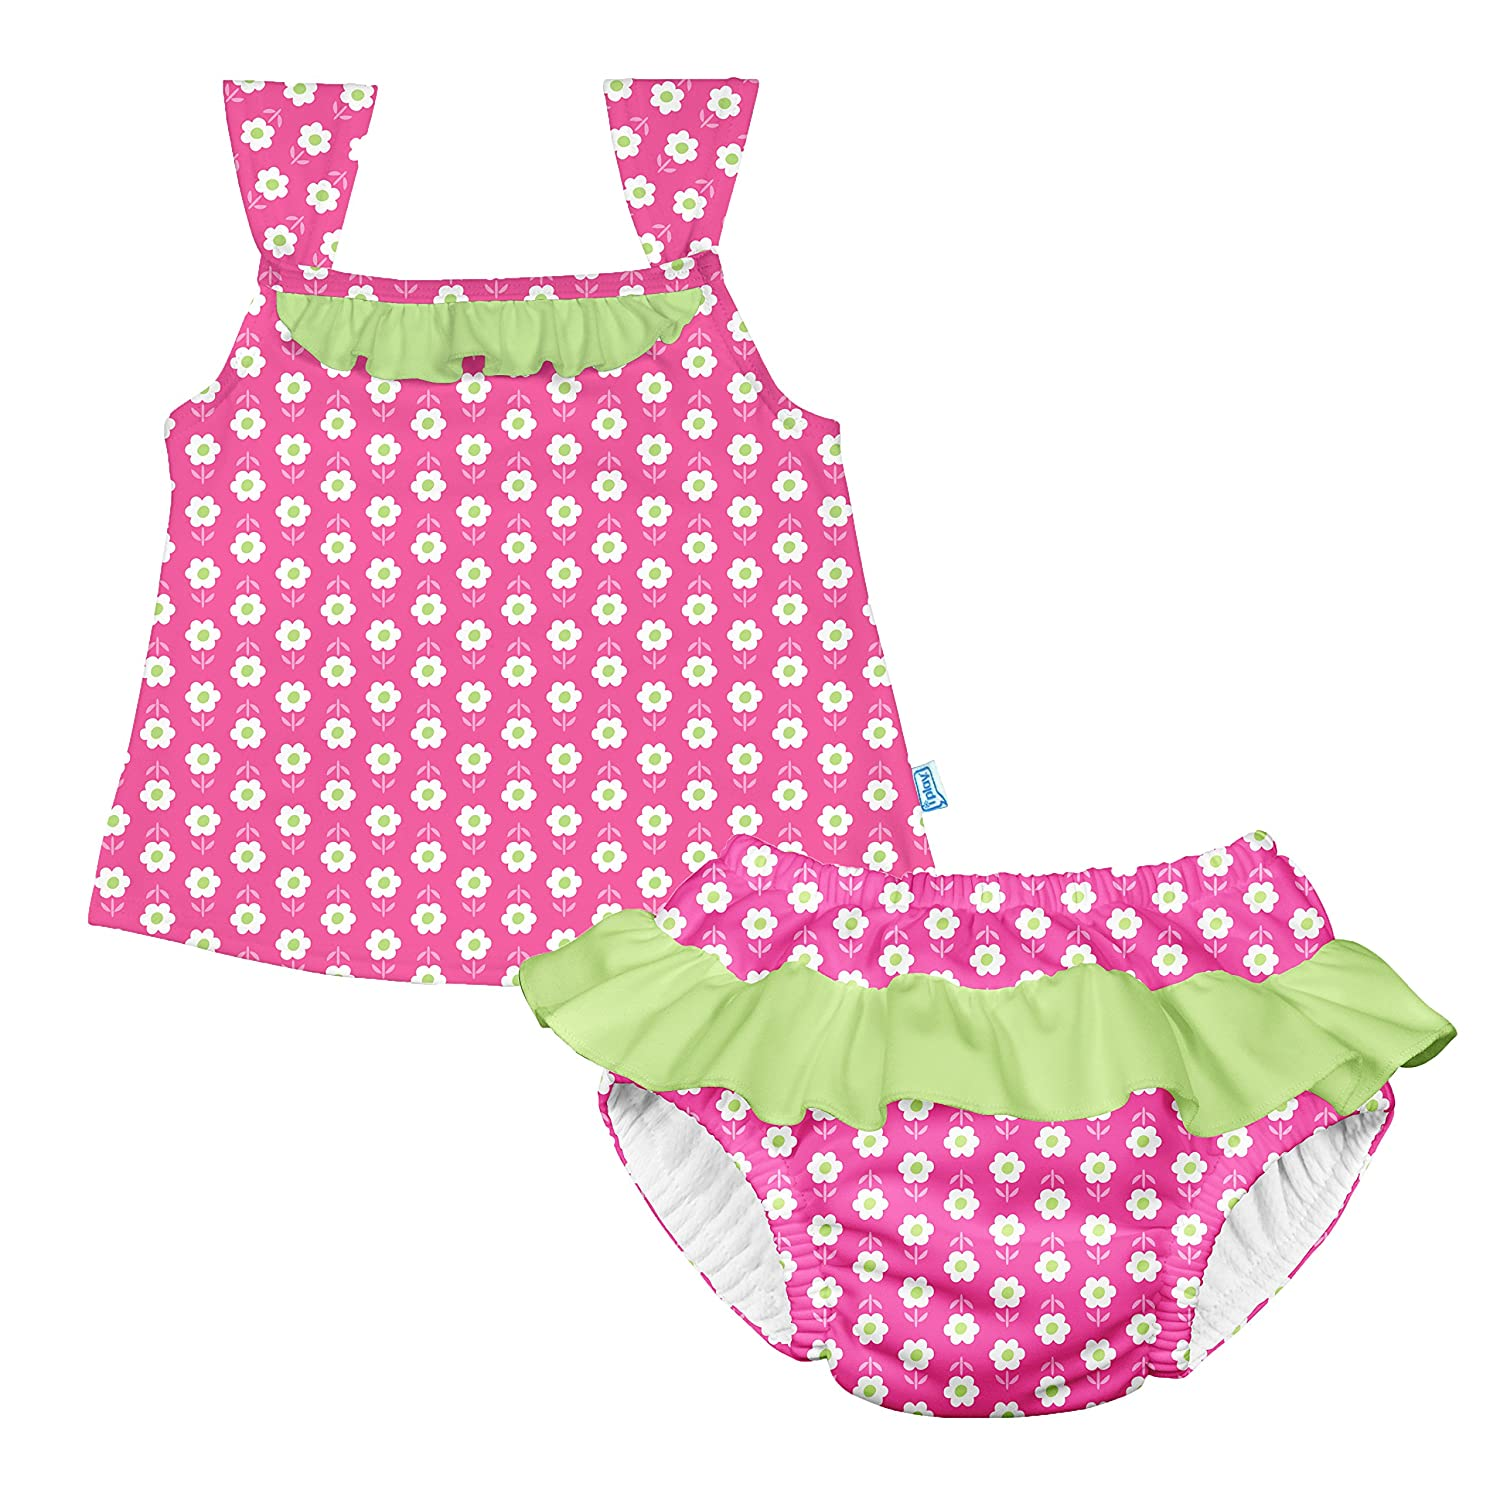 I-Play. Baby Girls' Tankini Set with Built-In Reusable Absorbent Swim Diaper i play Children' s Apparel 713175